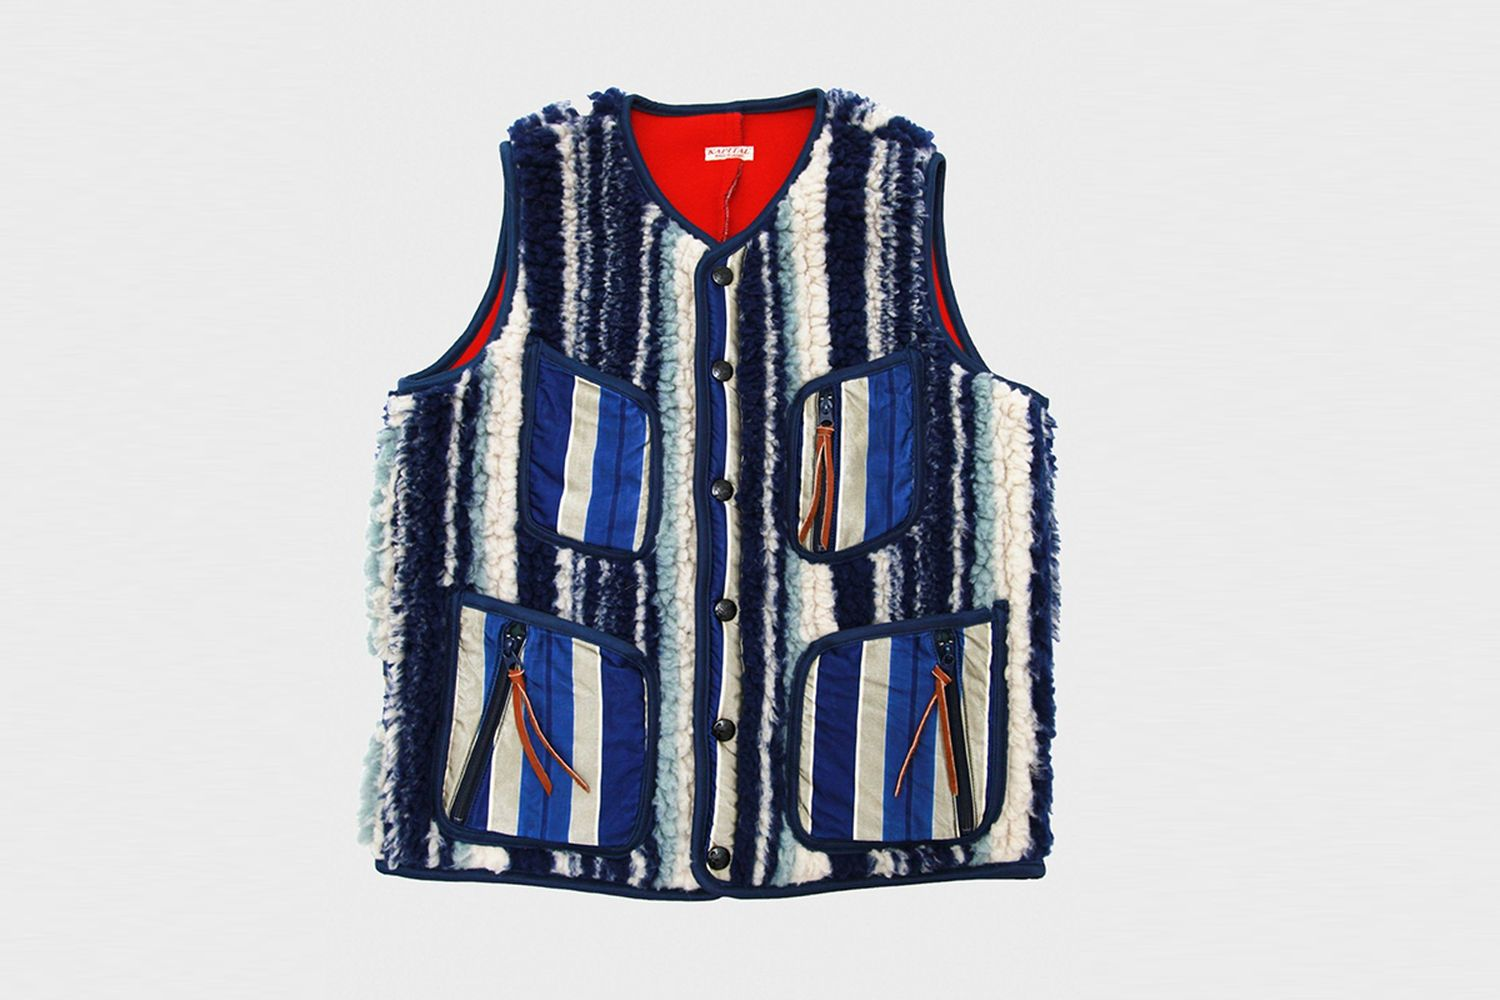 Primal Stripe Bonding Fleecy Beach Vest